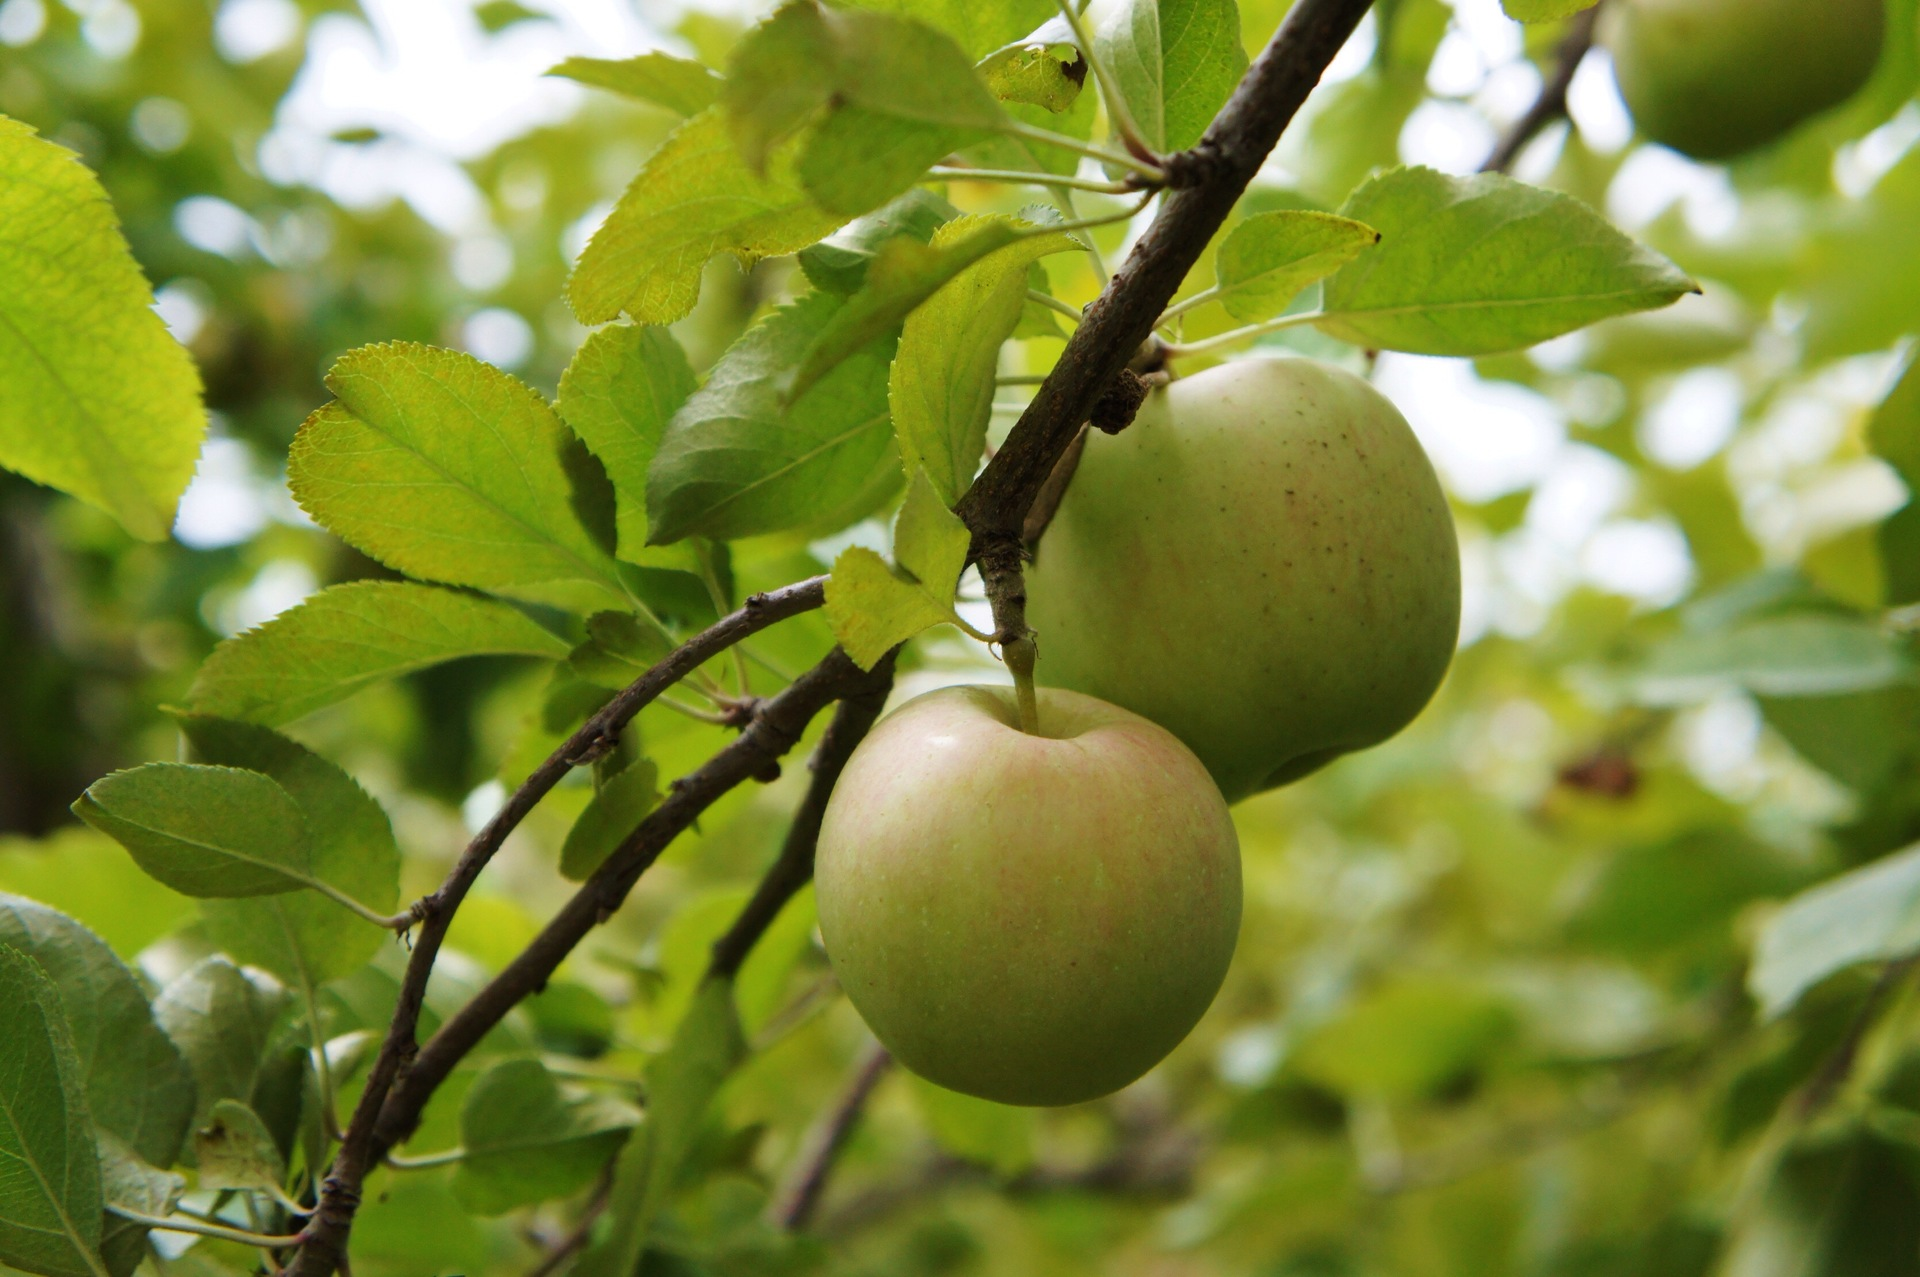 Branch of the apple tree